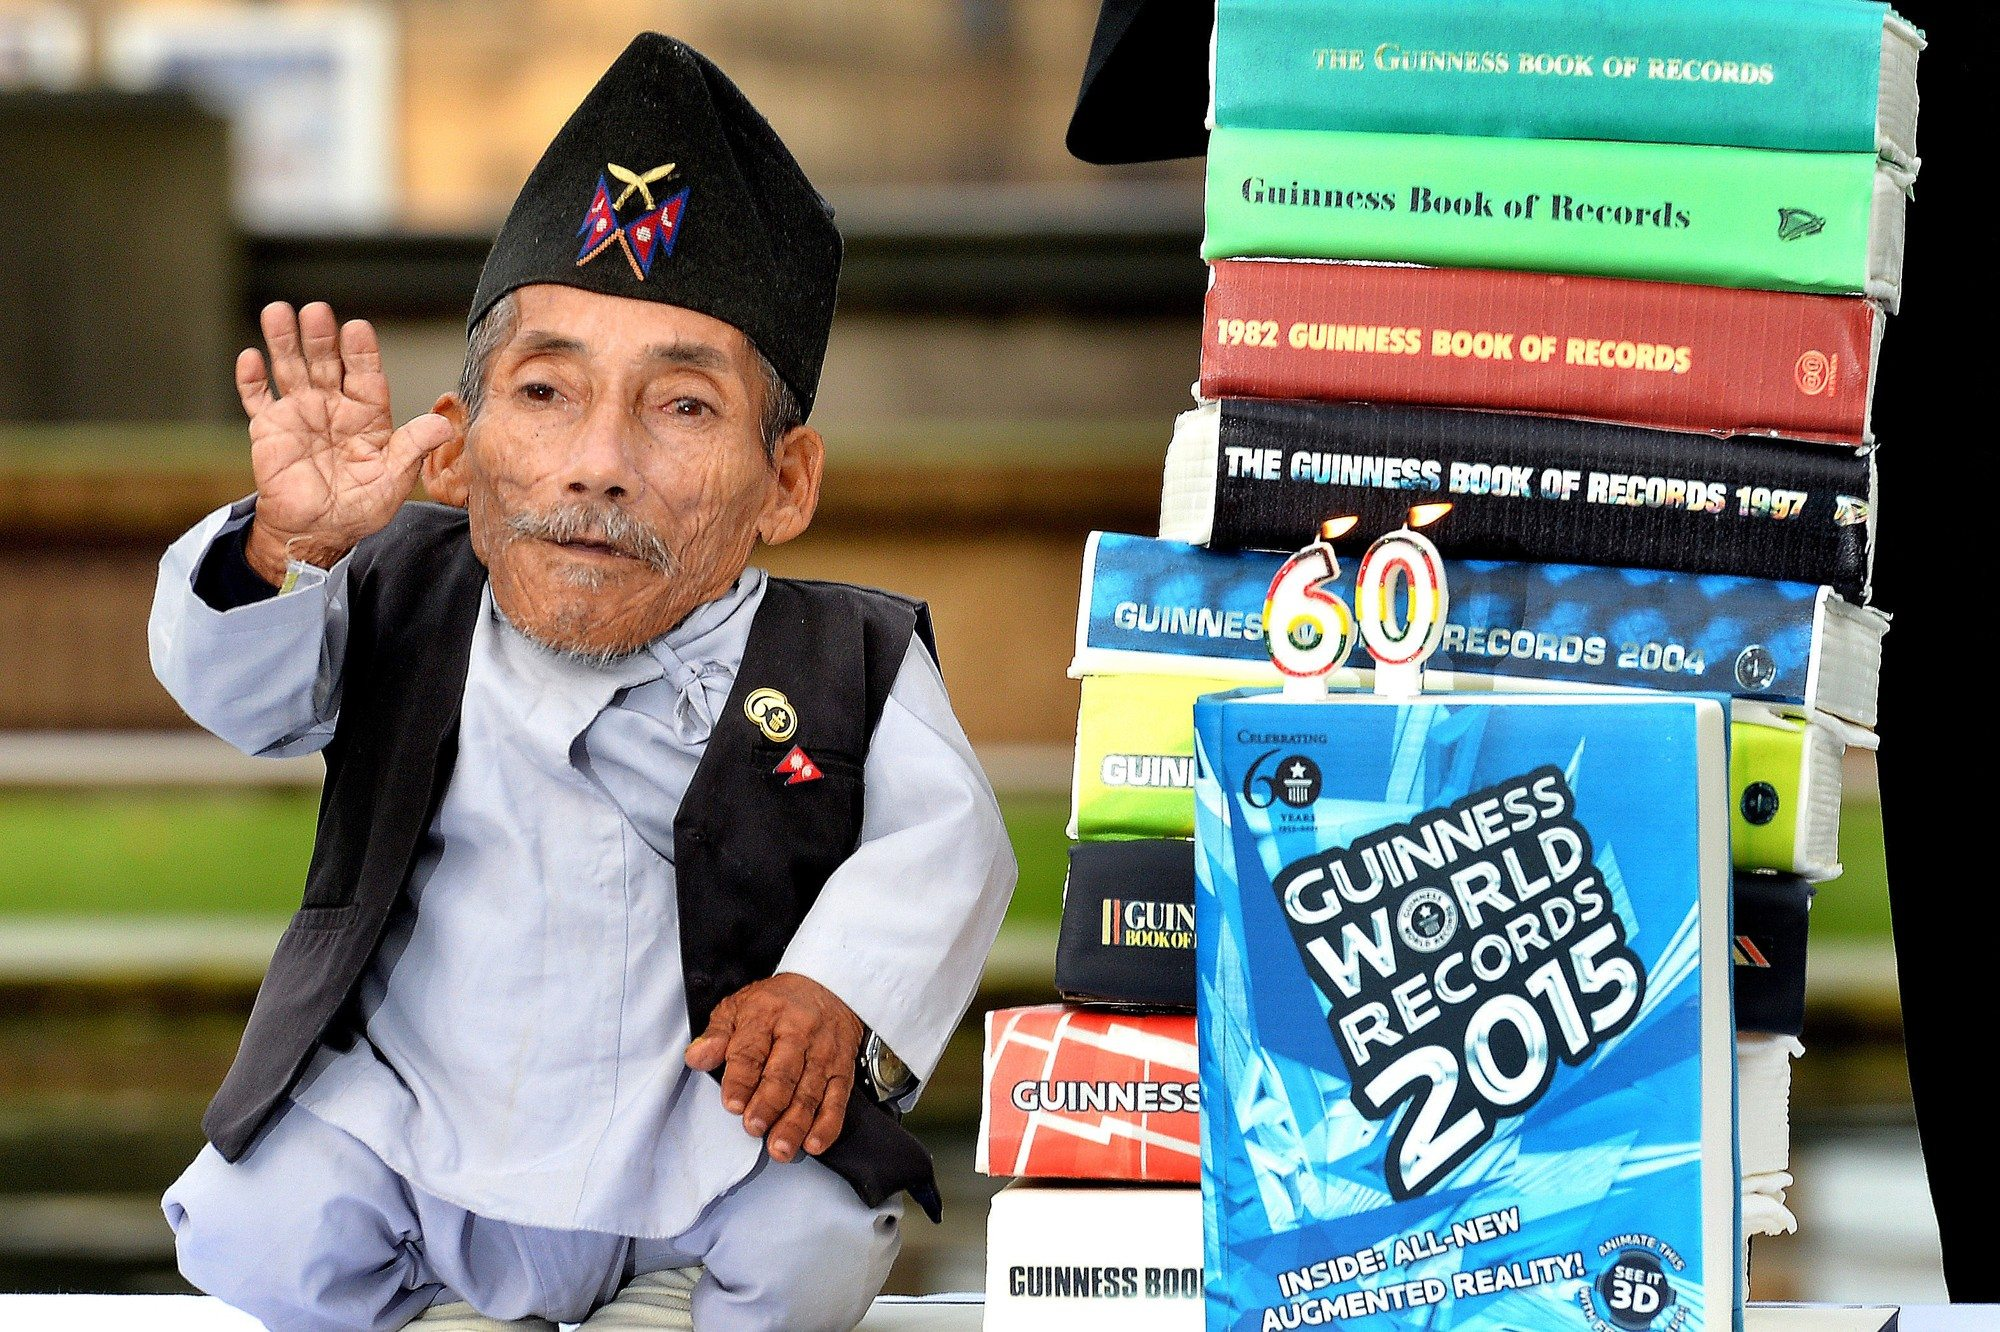 Chandra Dangi, who is 21.5 inches tall, at a photocall to celebrate the 10th annual Guinness World Records Day in Westminster, London, UK, Thursday November 13, 2014. Photo by John Stillwell/PA Wire/ABACAPRESS.COM